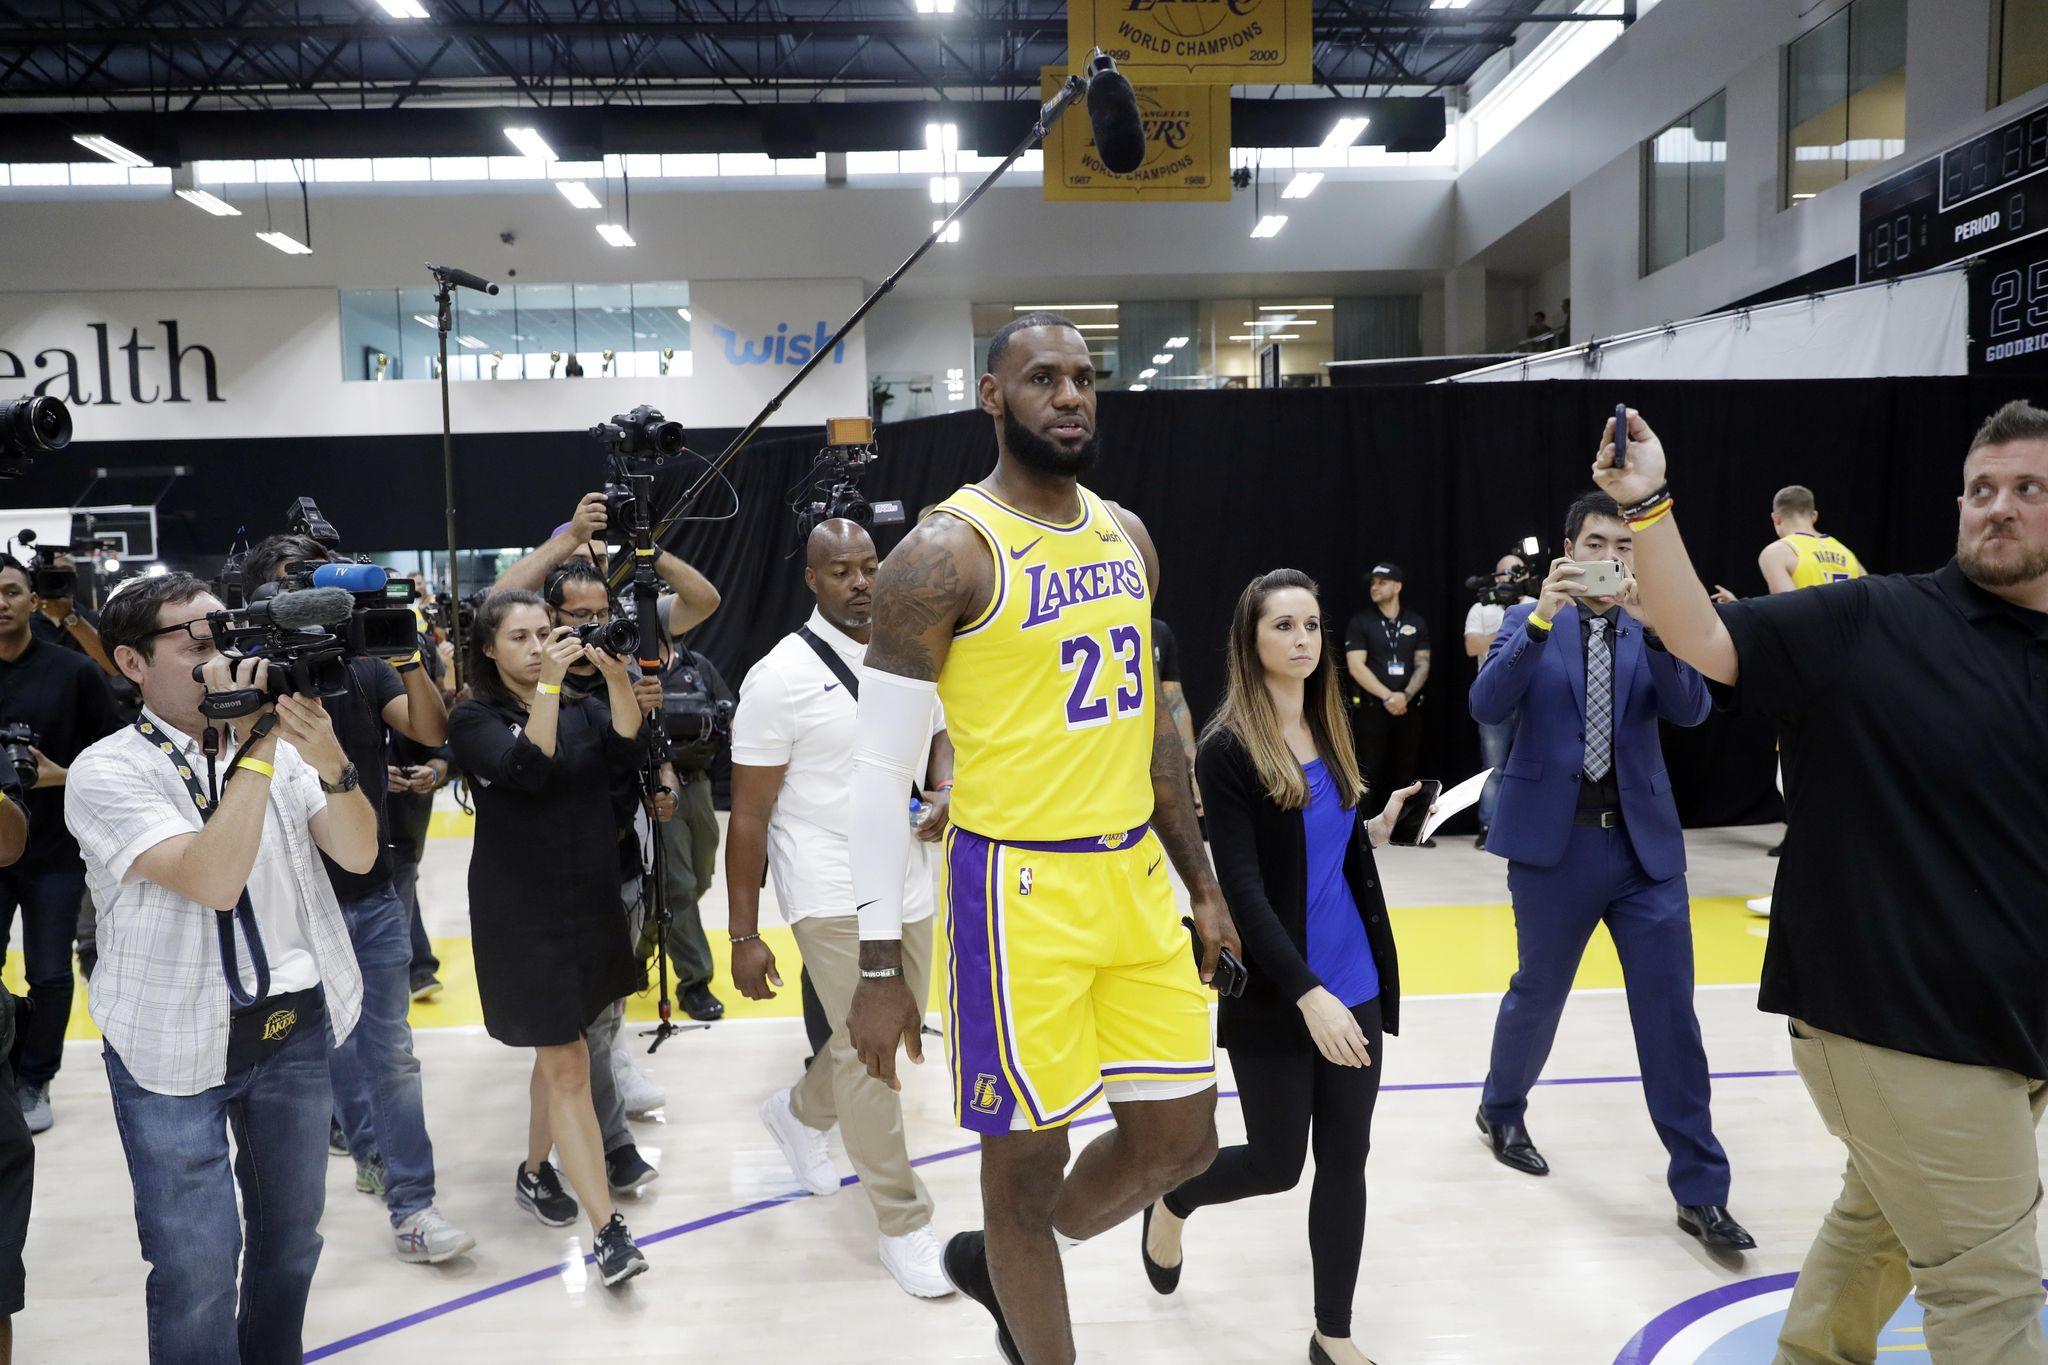 Lakers_media_day_basketball_01467_s2048x1365